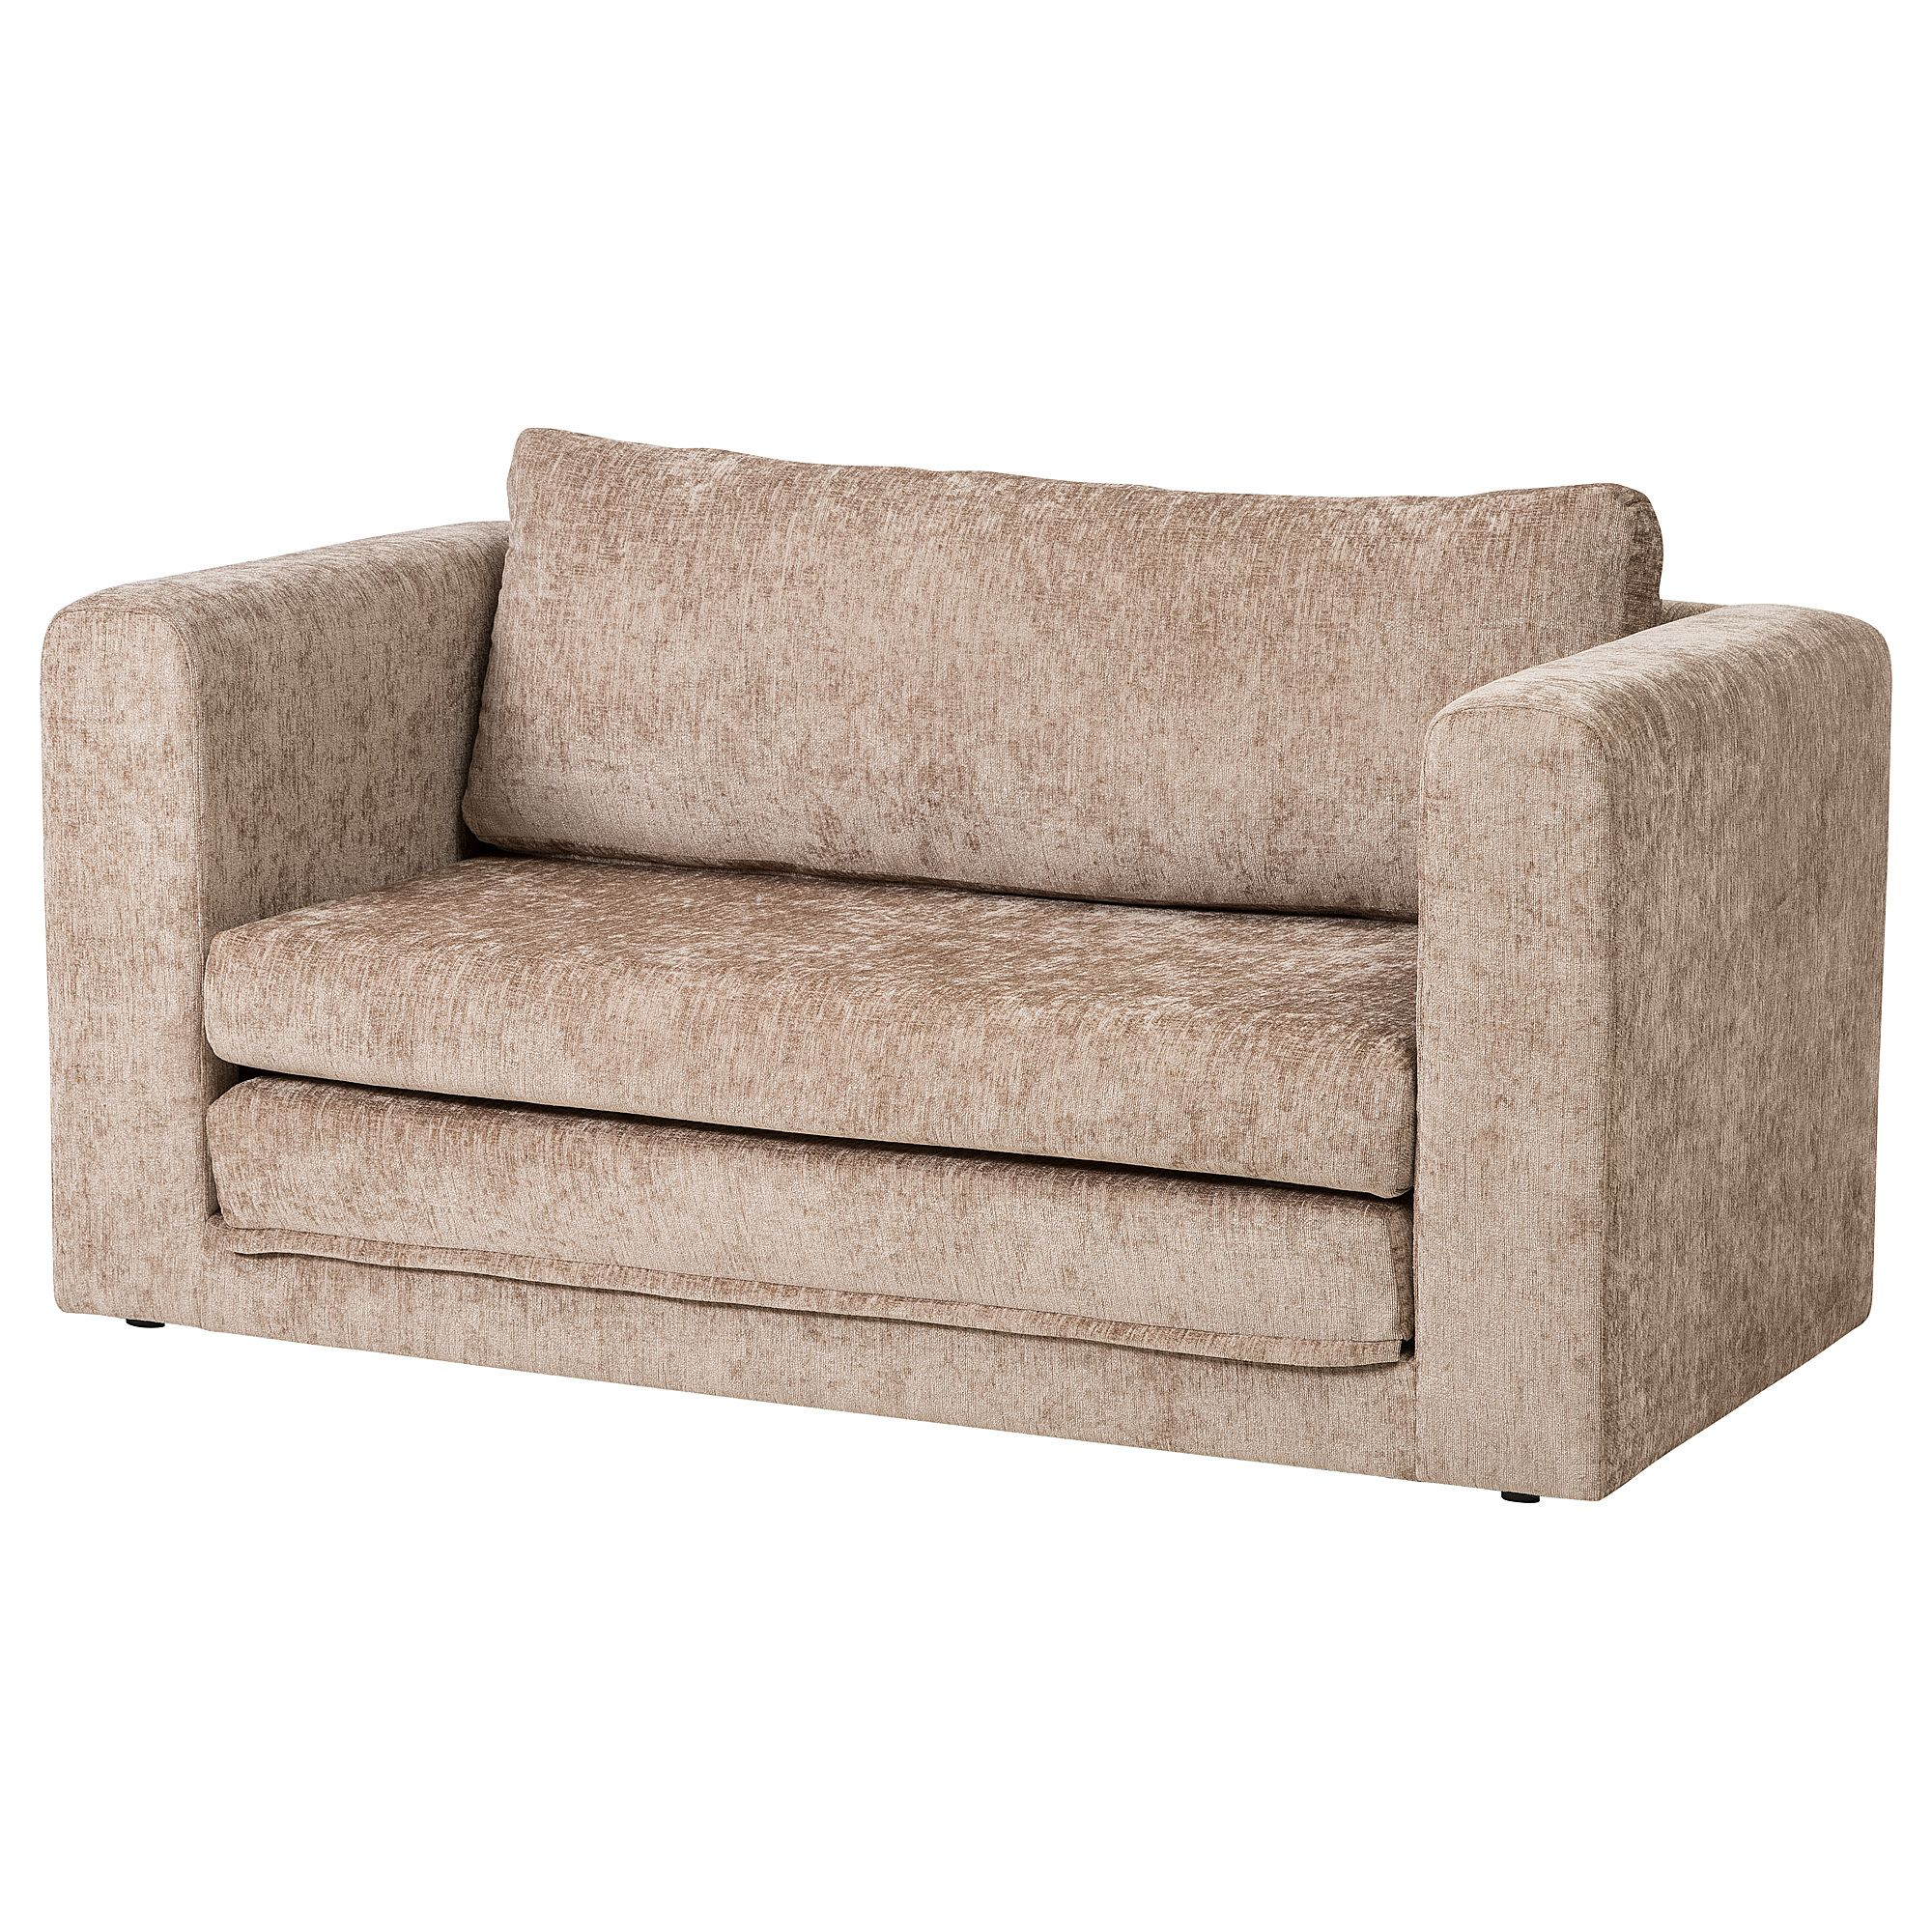 Fabulous Askeby 2 Seat Sofa Bed Beige Ikea New Office Sofa Bed Evergreenethics Interior Chair Design Evergreenethicsorg